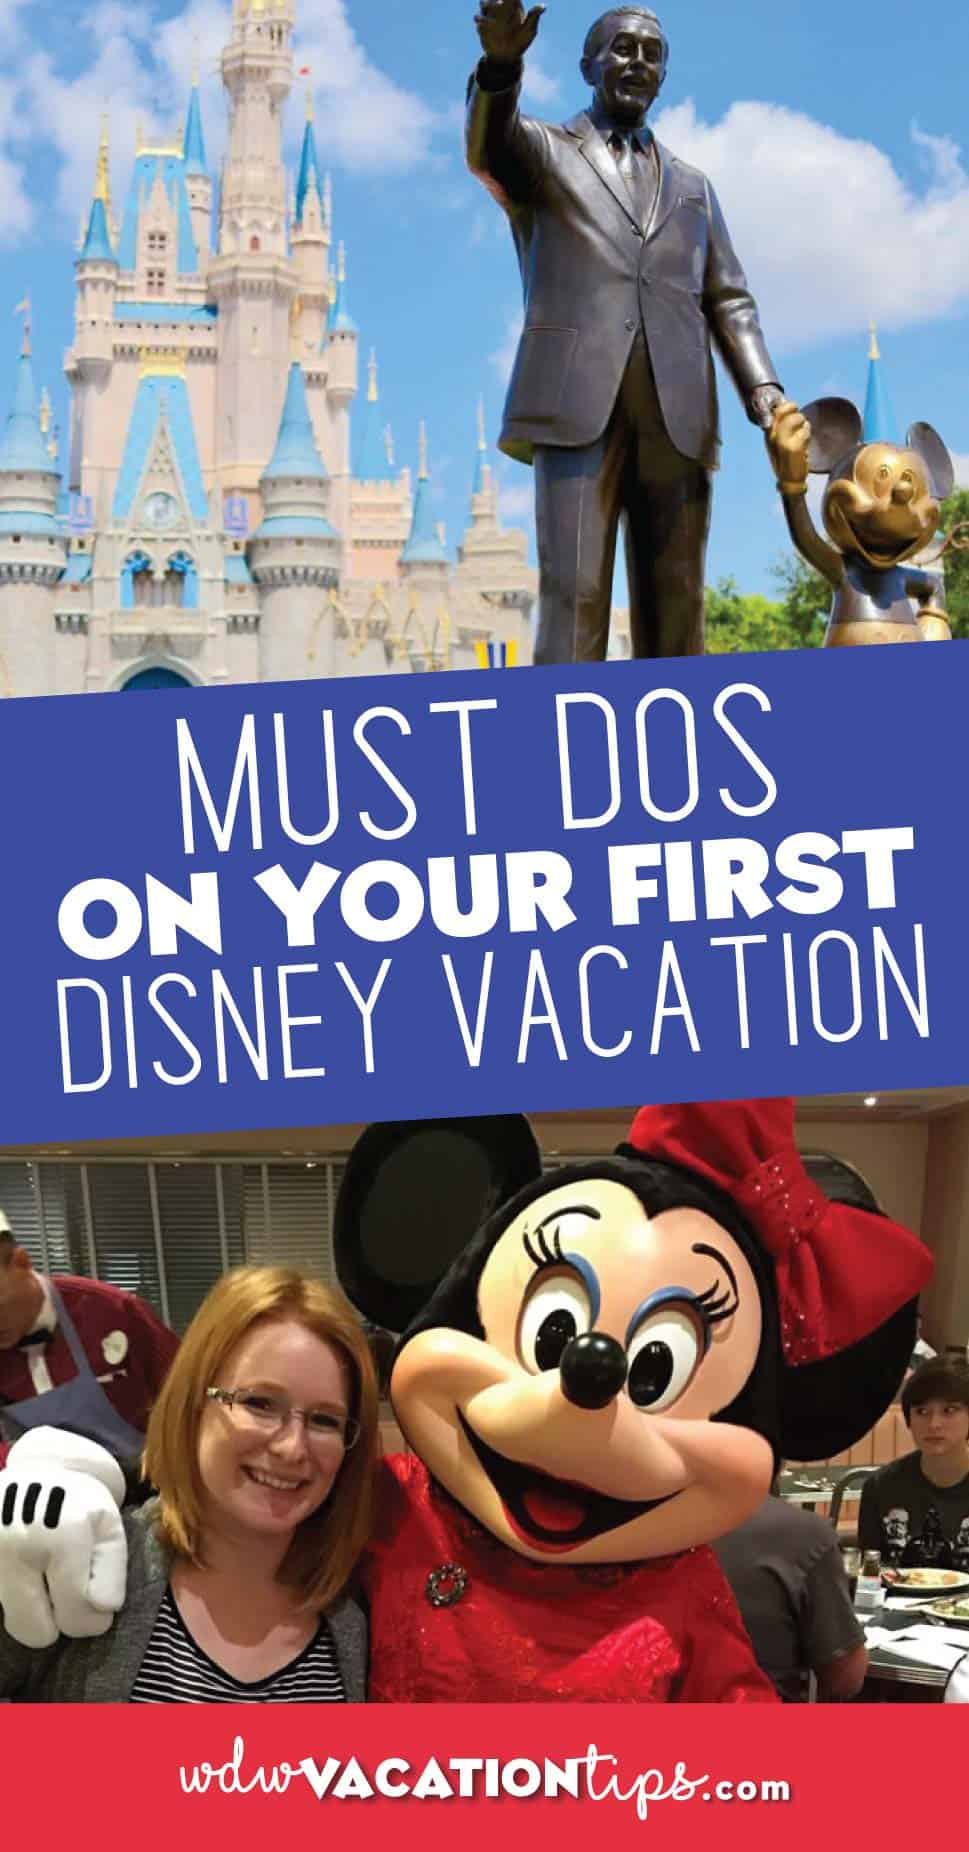 Must Dos on your first Disney Vacation.